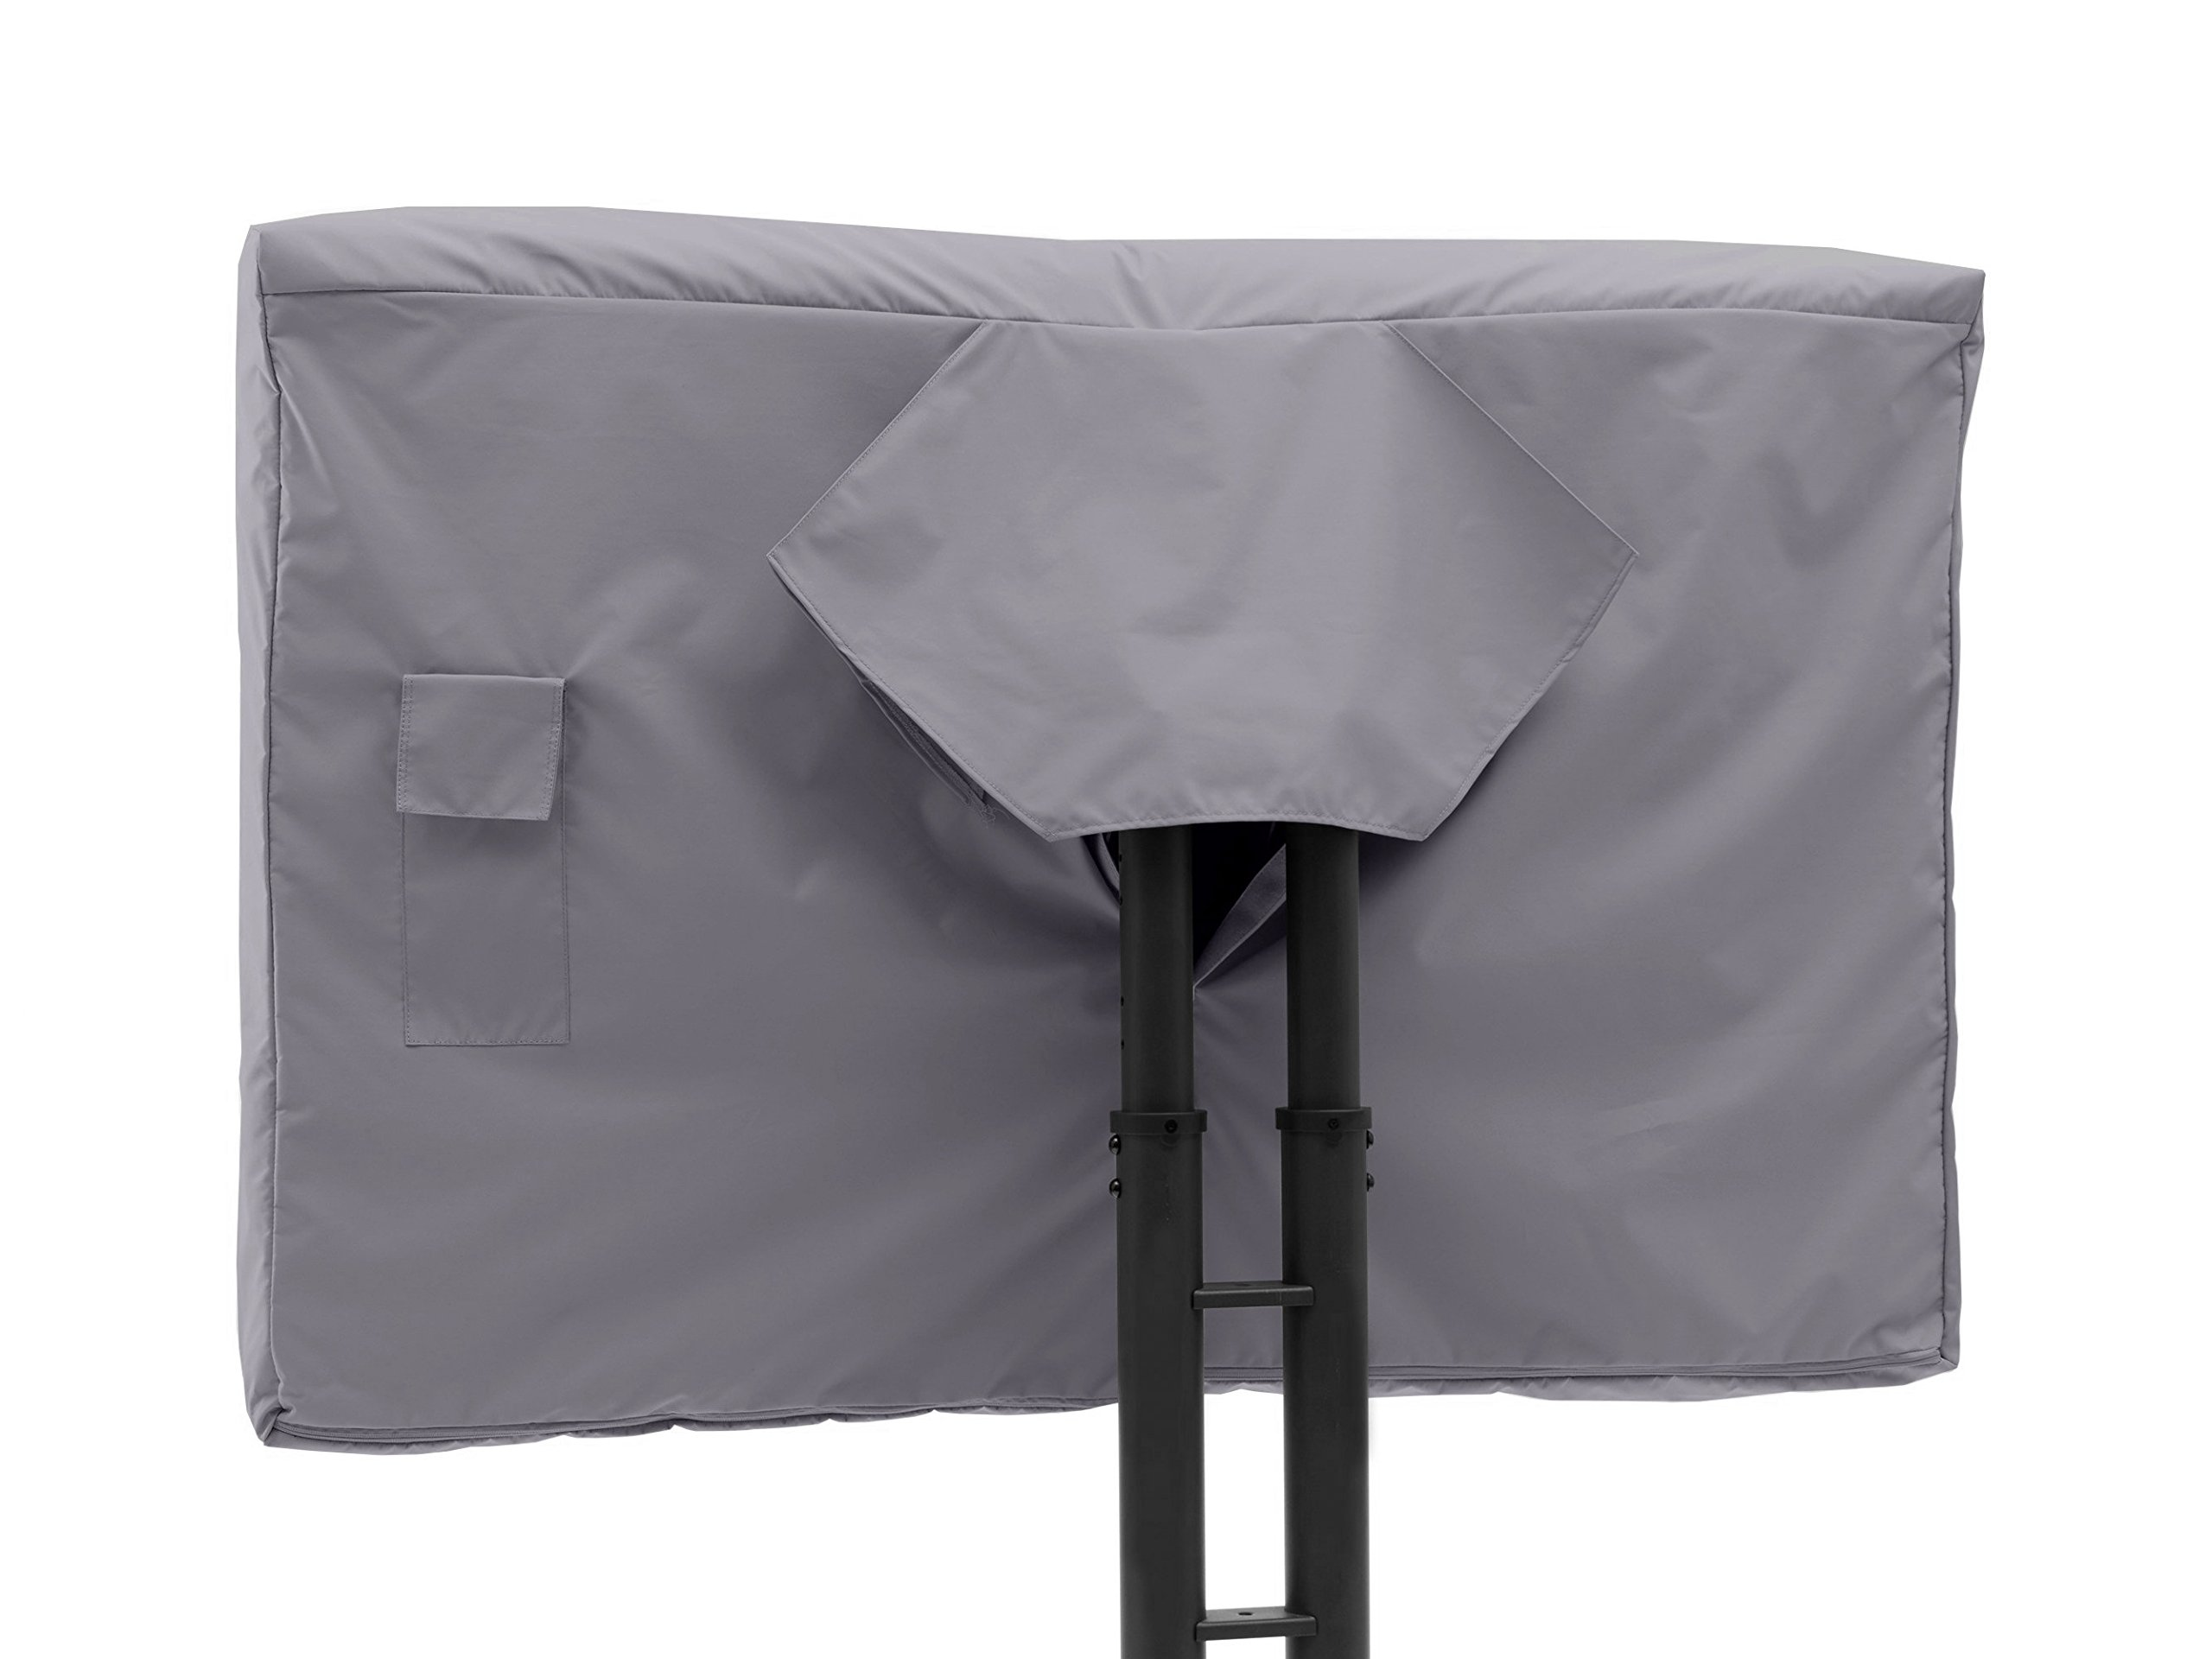 Covermates - Outdoor TV Cover - Fits 55 to 59 Inch TV's - Elite - 300 Denier Stock-Dyed Polyester - Full Coverage - Front Interior Fleece Lining - 3 YR Warranty - Water Resistant - Charcoal by Covermates